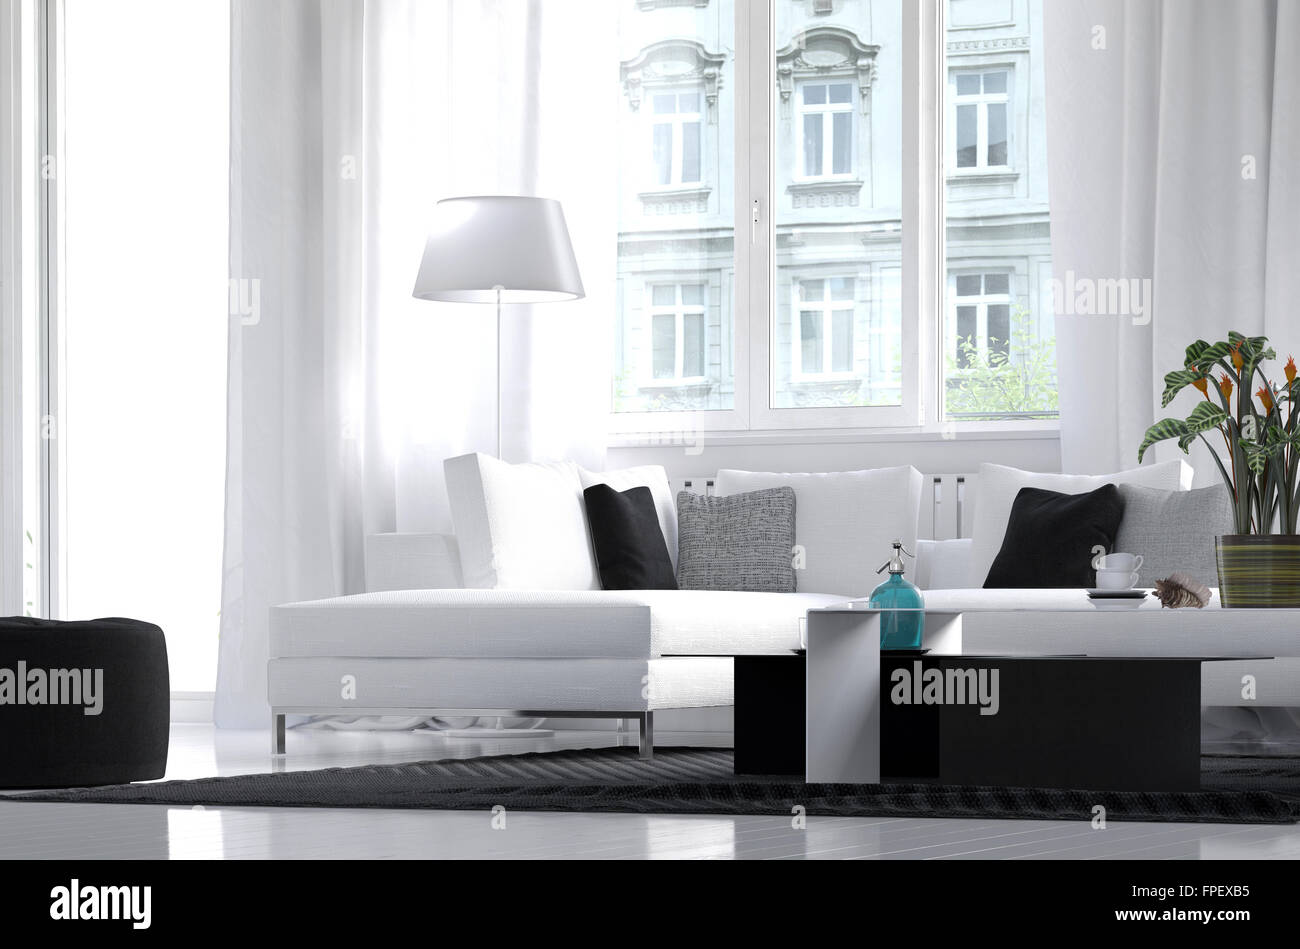 moderne wohnung wohnzimmer interieur mit wei em dekor und. Black Bedroom Furniture Sets. Home Design Ideas